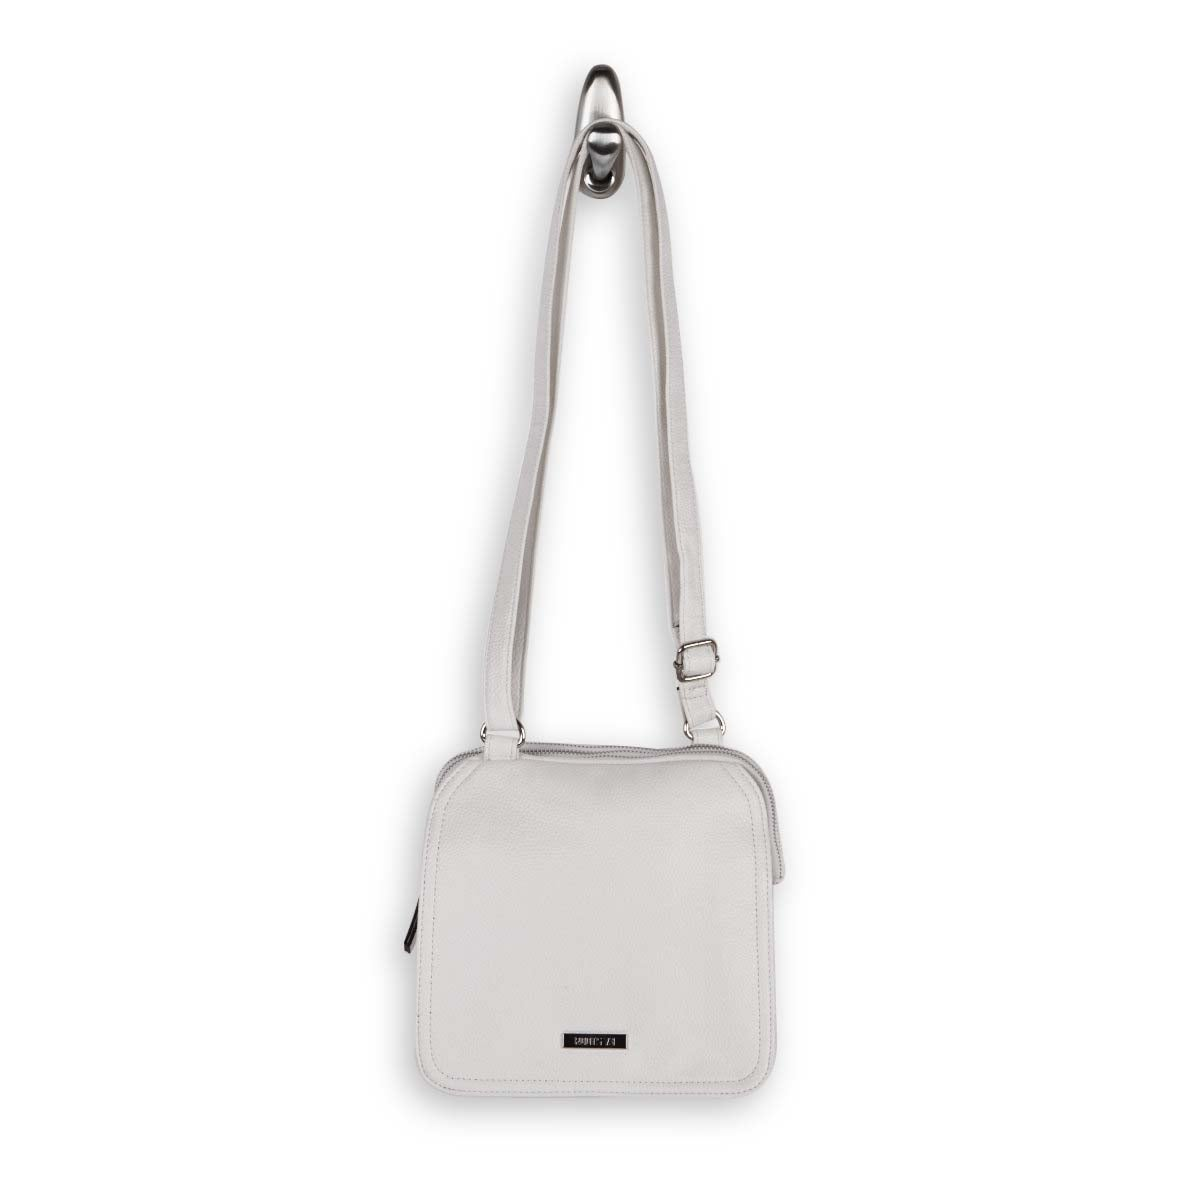 LdsRoots73 white 3 compartment crossbody